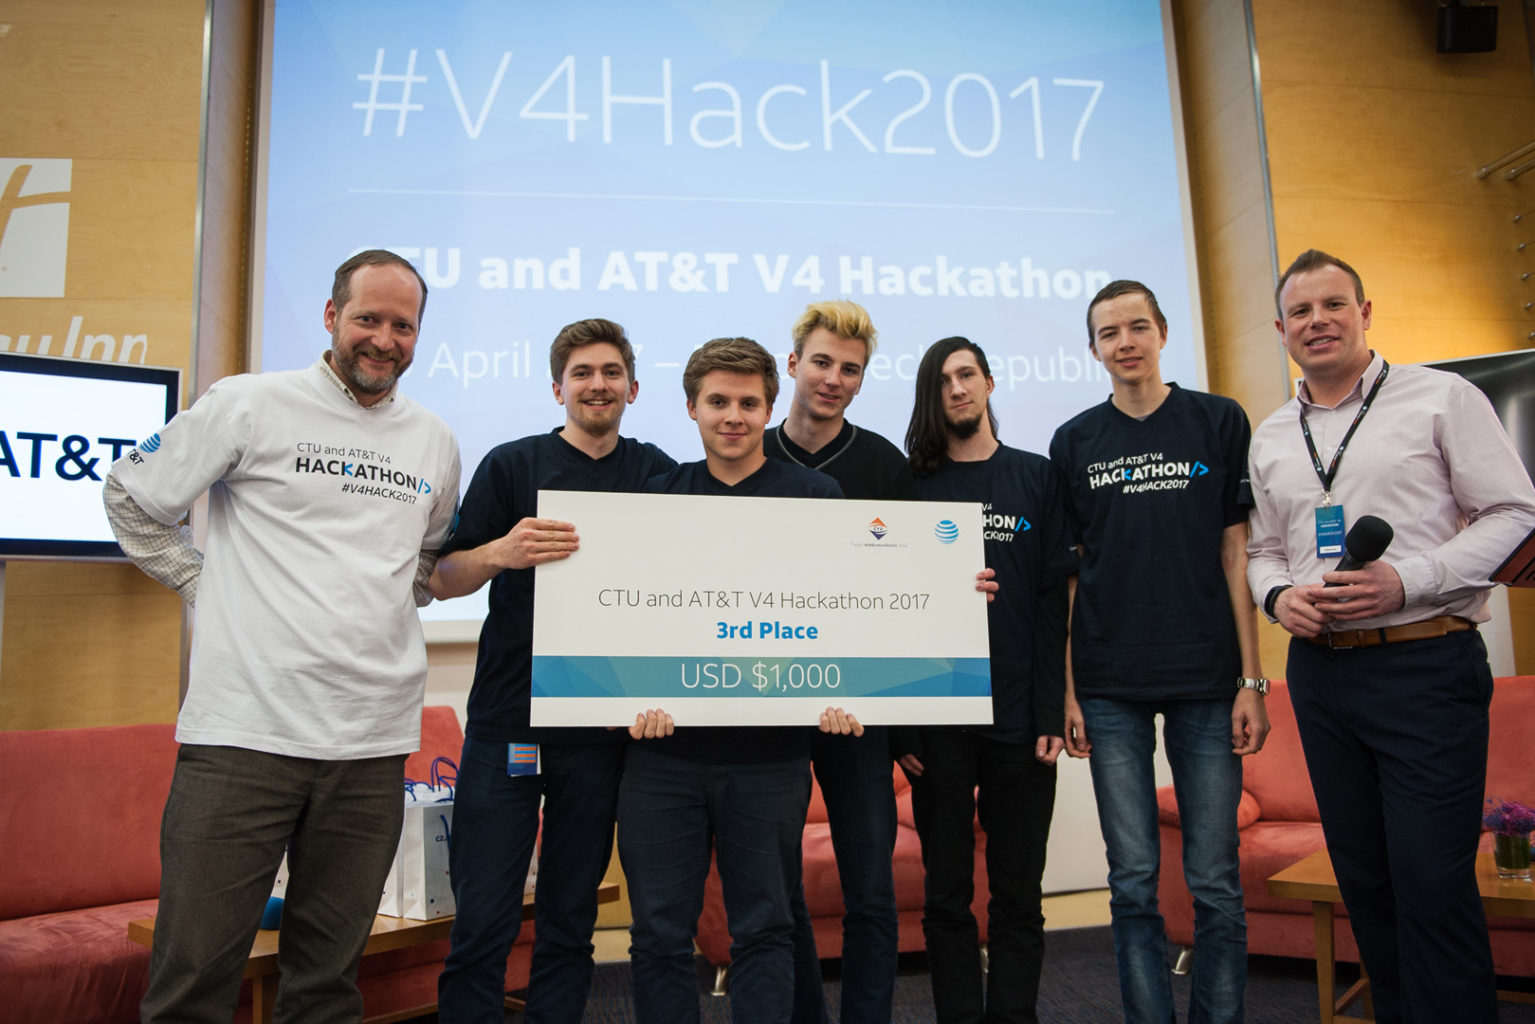 V4 Hackathon 2017 Brno Holiday Inn winners 3rd place (28)